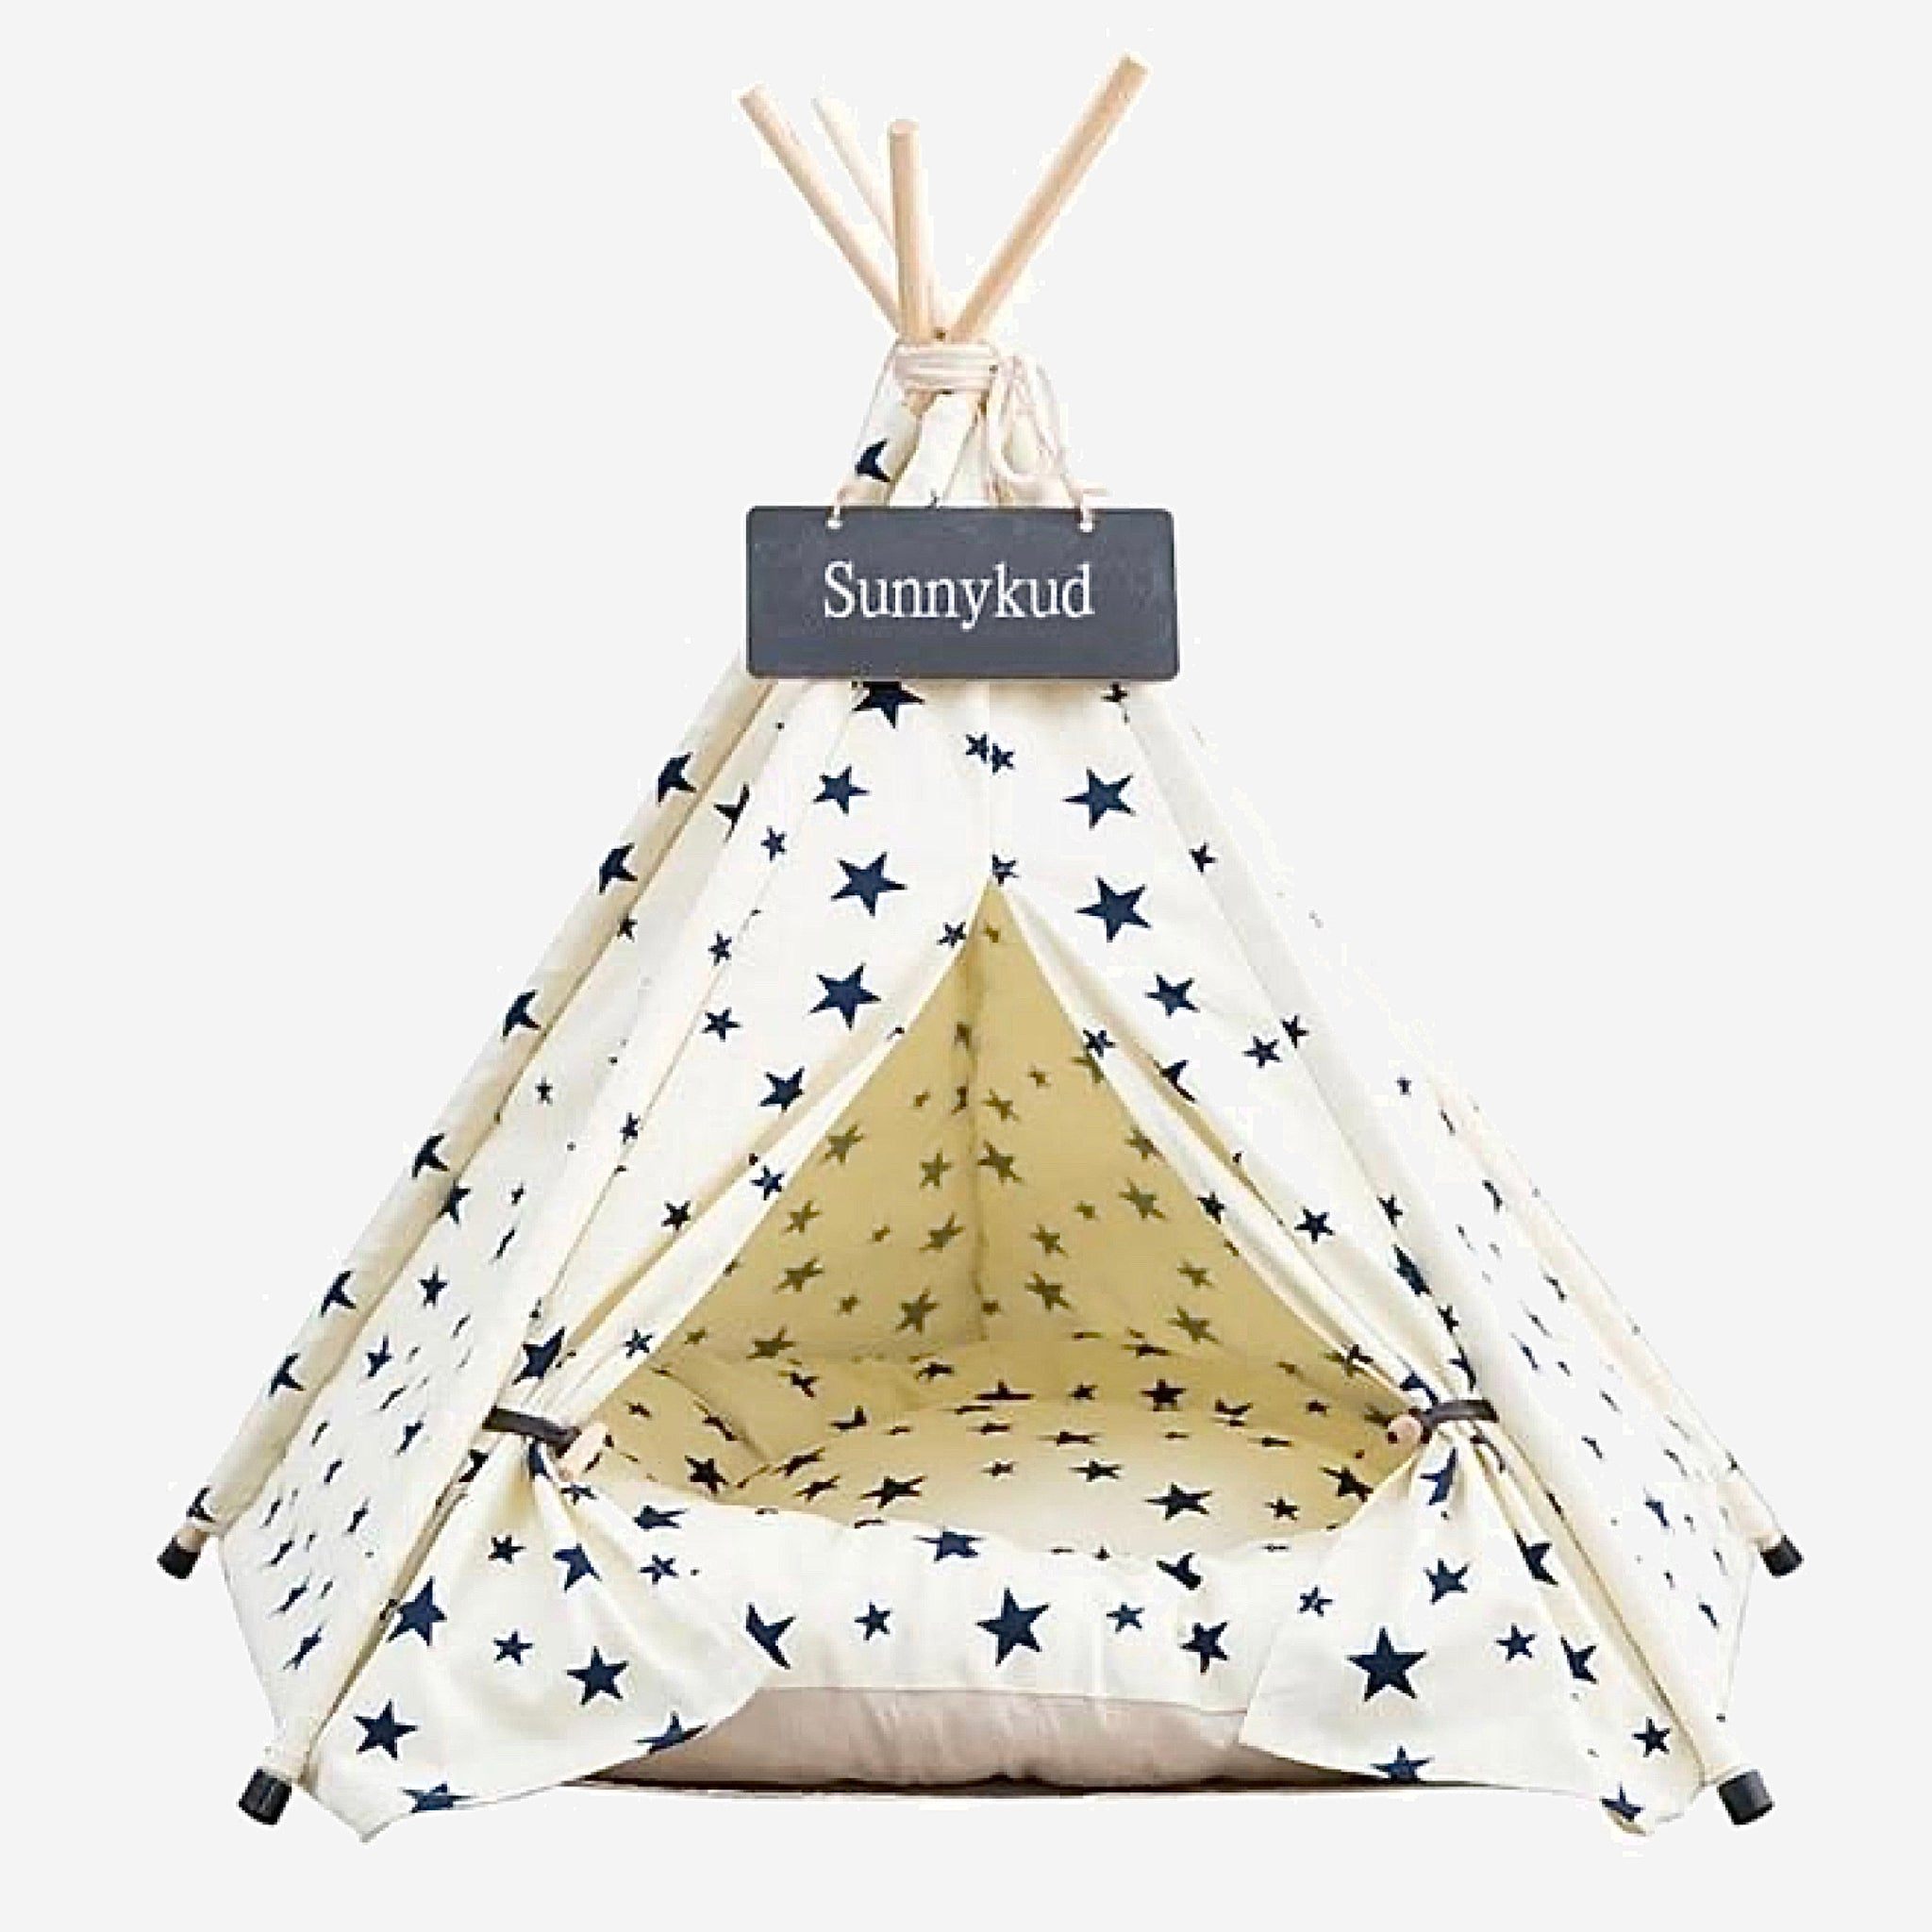 Teepee Pet Tent with Thick Cushion   House Cat Bed Portable for Dog Puppy Excursion Outdoor Indoor use Trend WhiteBlack Stars